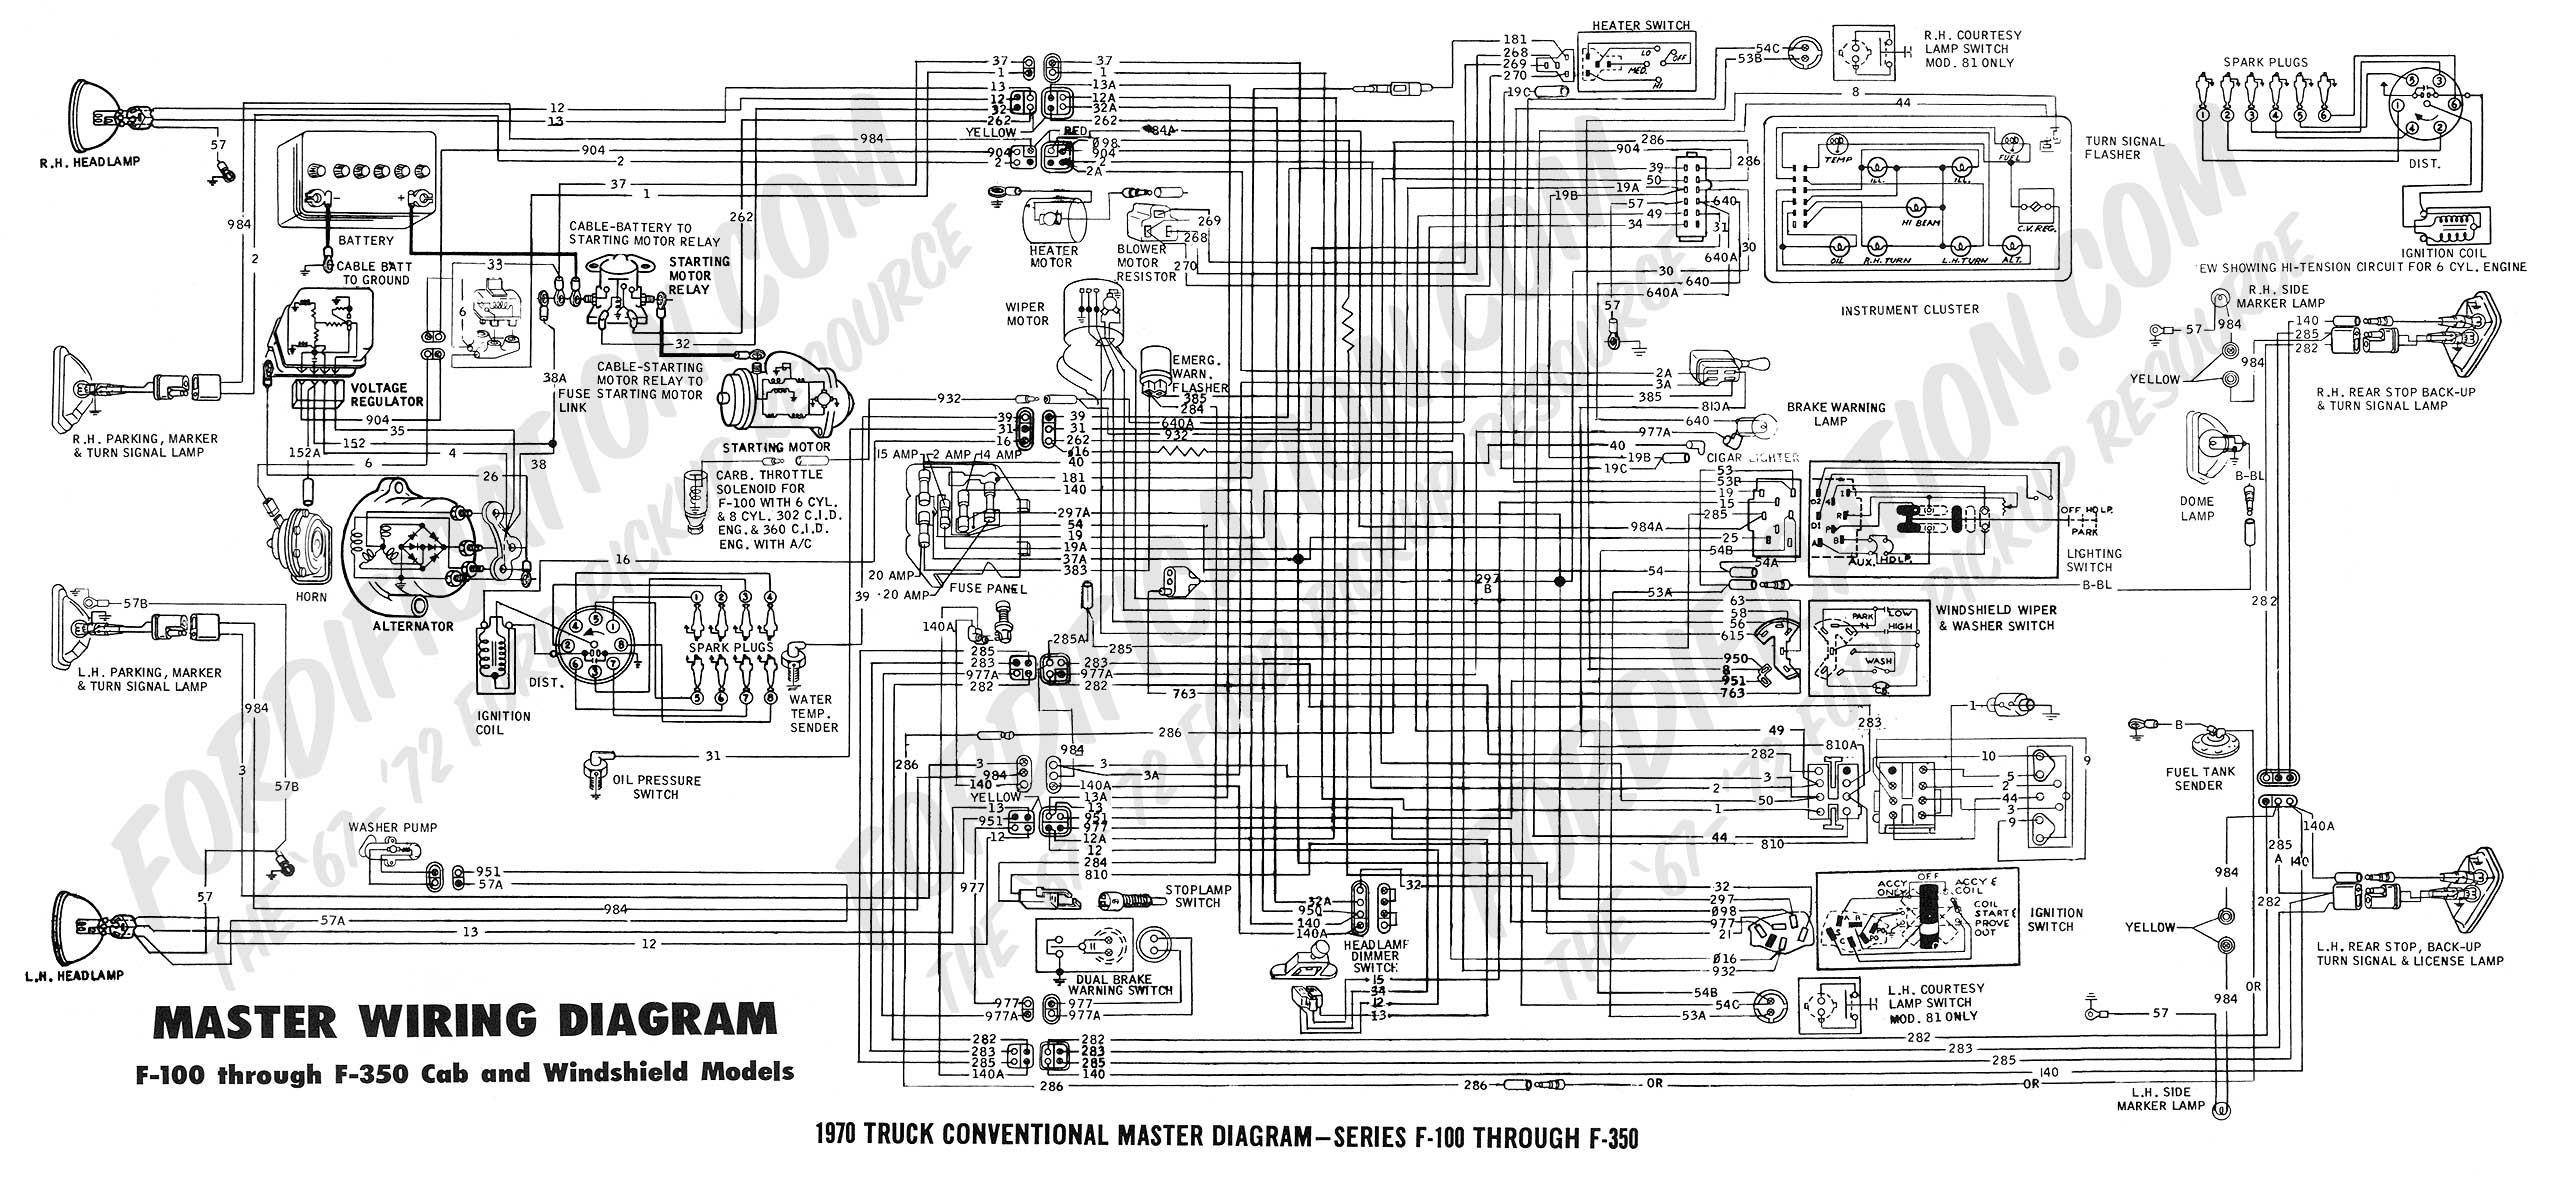 wiring diagram 70_master ford truck technical drawings and schematics section h wiring 1990 f150 wiring diagram at gsmx.co